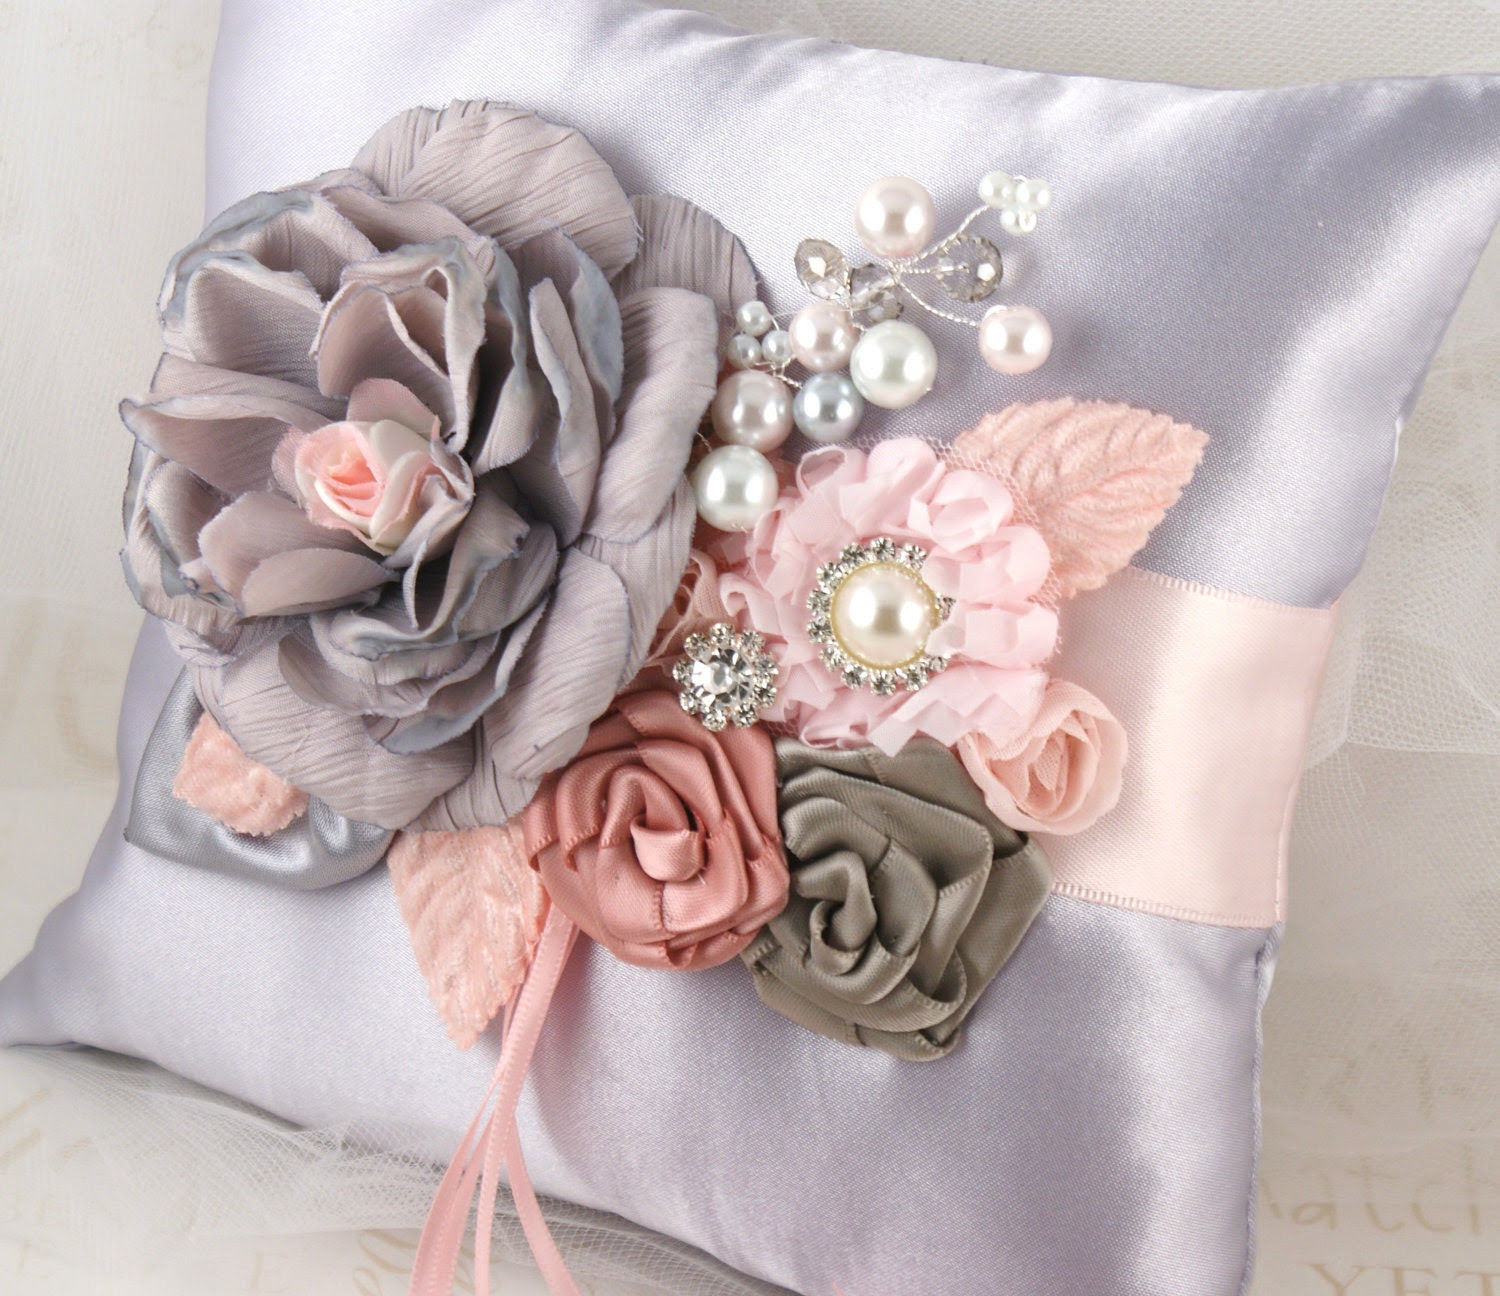 Bridal Ring Bearer Pillow with Silk and Satin Flowers, Pearls, Crystals and Jewels - So Romantic